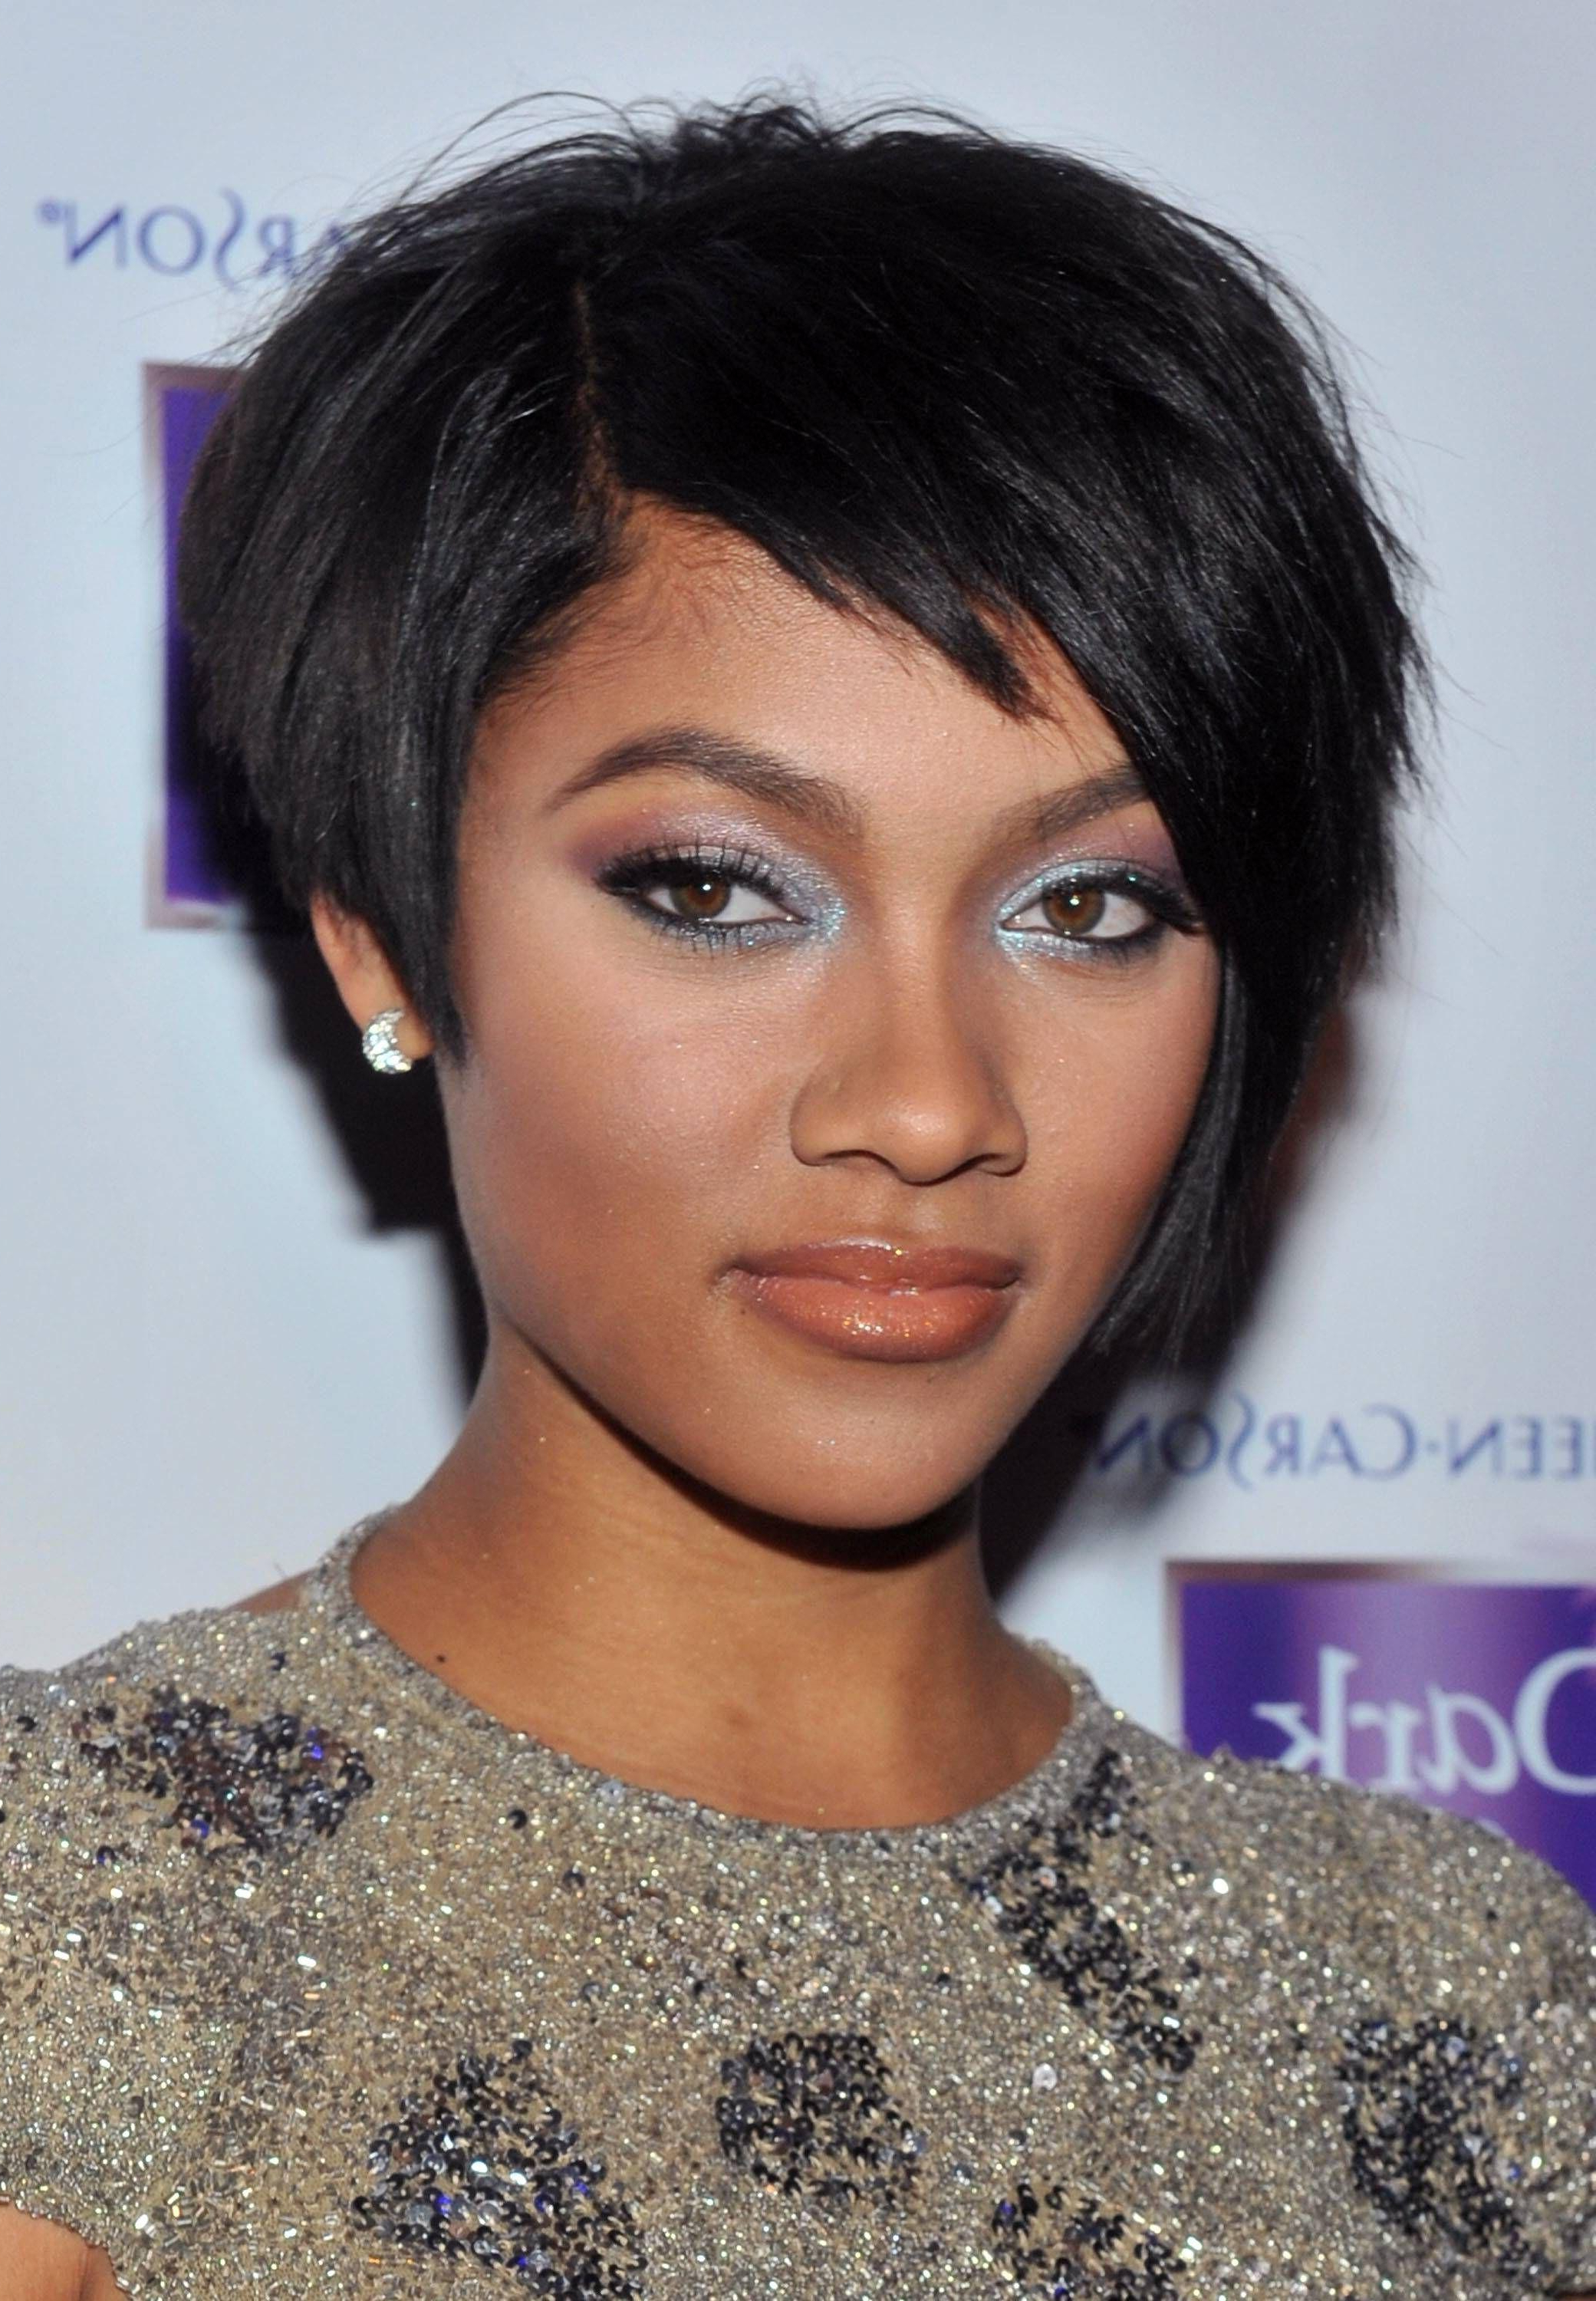 Beautiful Short Hairstyles For Black Women With Round Faces 2016 Concept Within Short Hairstyles For Round Faces African American (View 18 of 25)